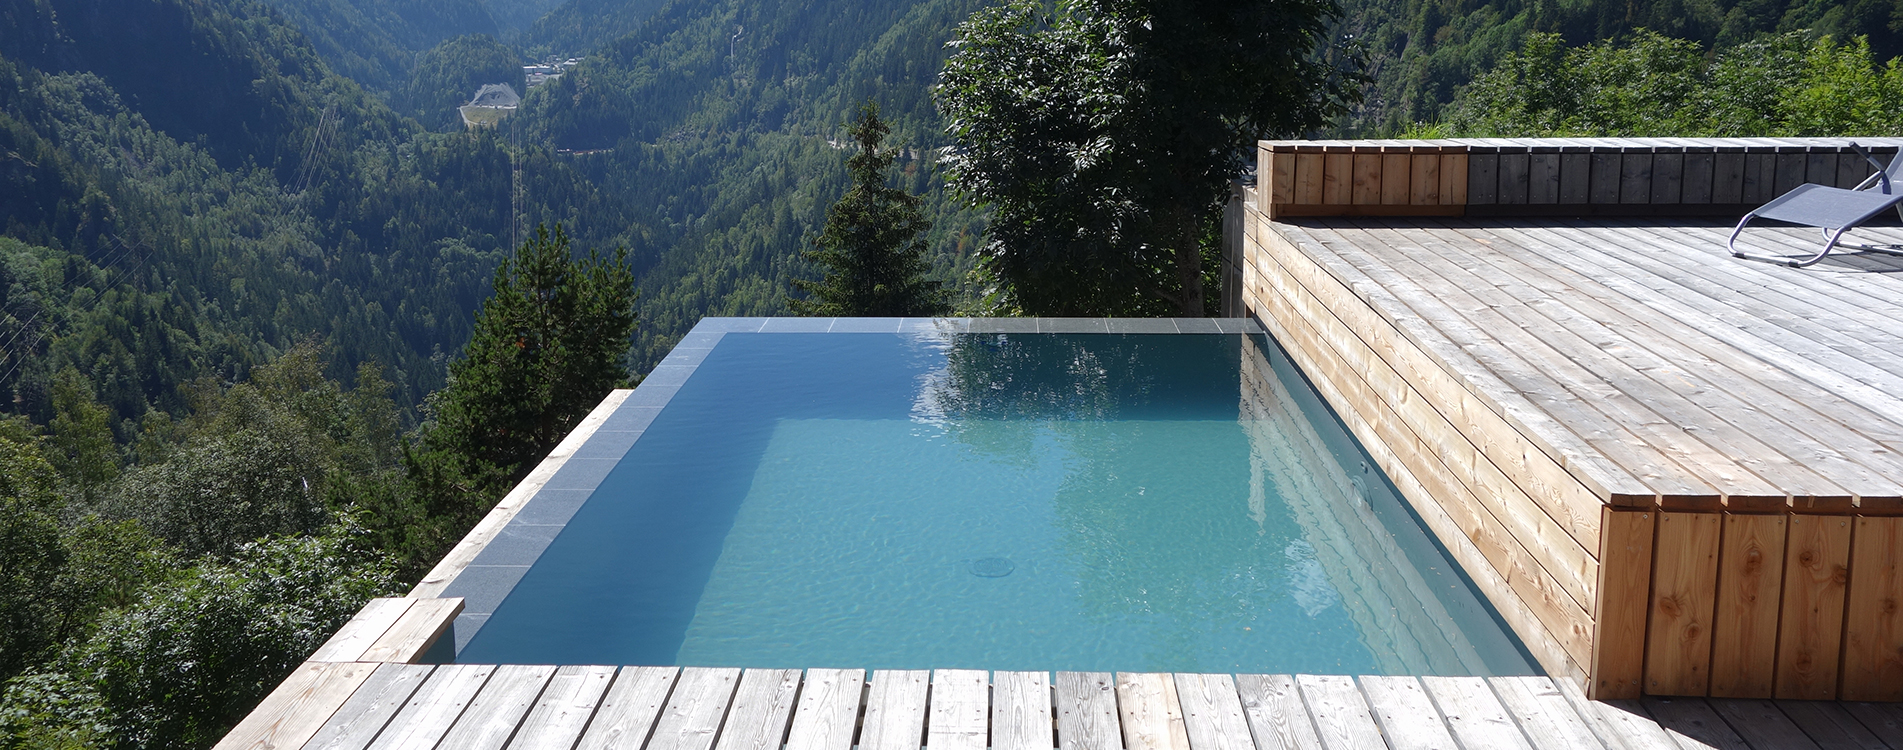 Construction piscine a debordement construction d 39 une for Construction piscine